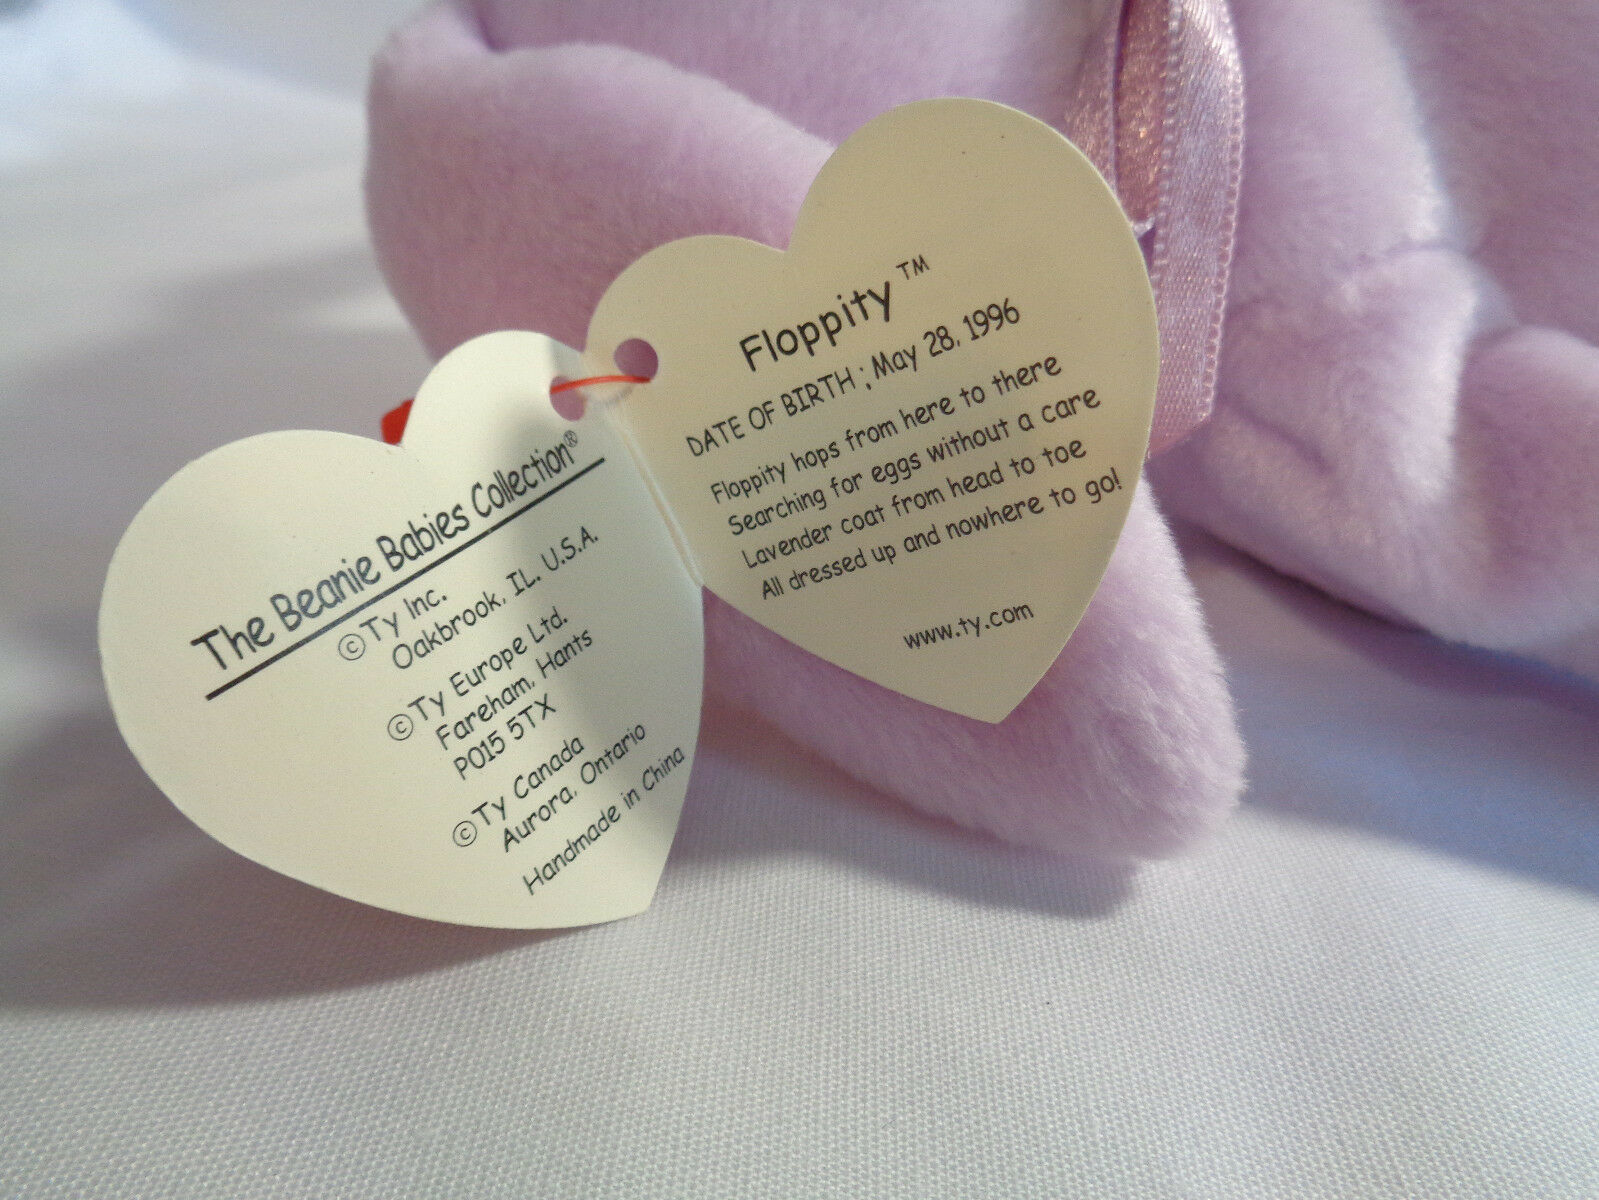 """TY Beanie Babies 1996 Lavender Bunny Floppity 8"""" w/ Hang Tag 5/23/96 image 6"""